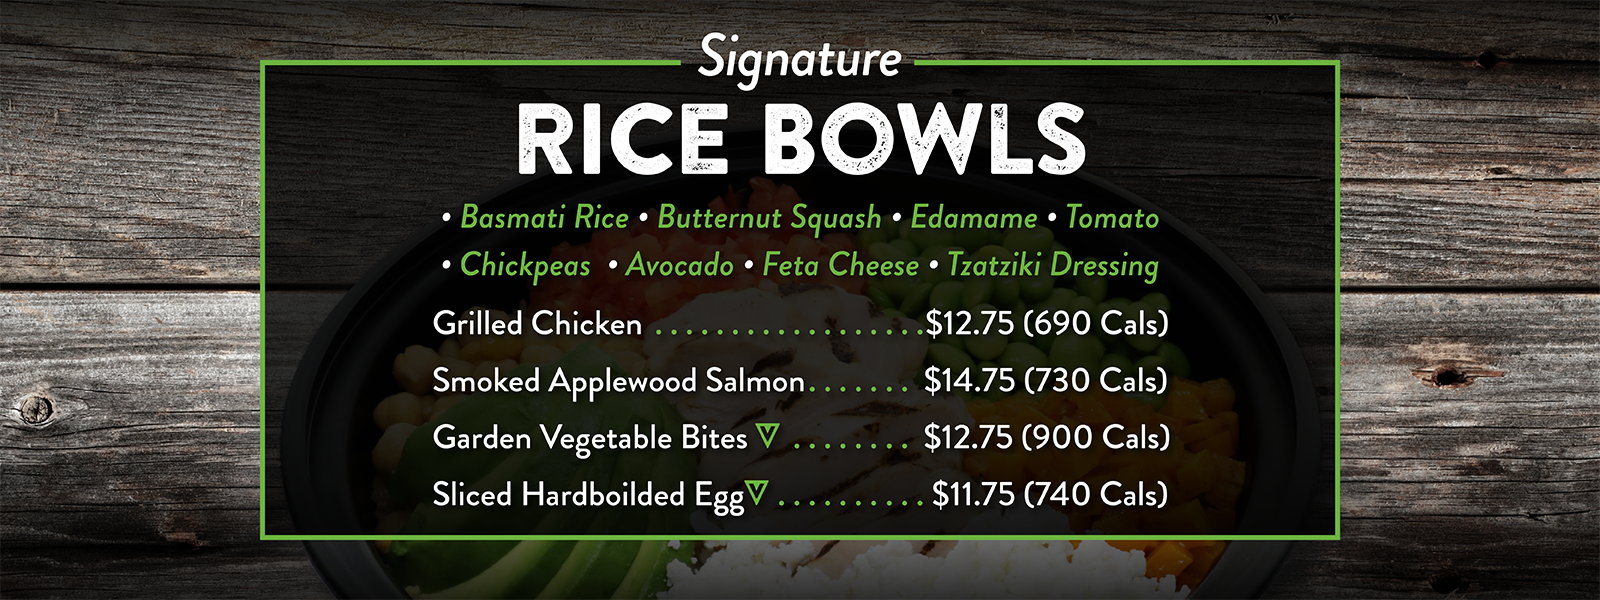 Introducing Brand New Signature Rice Bowls